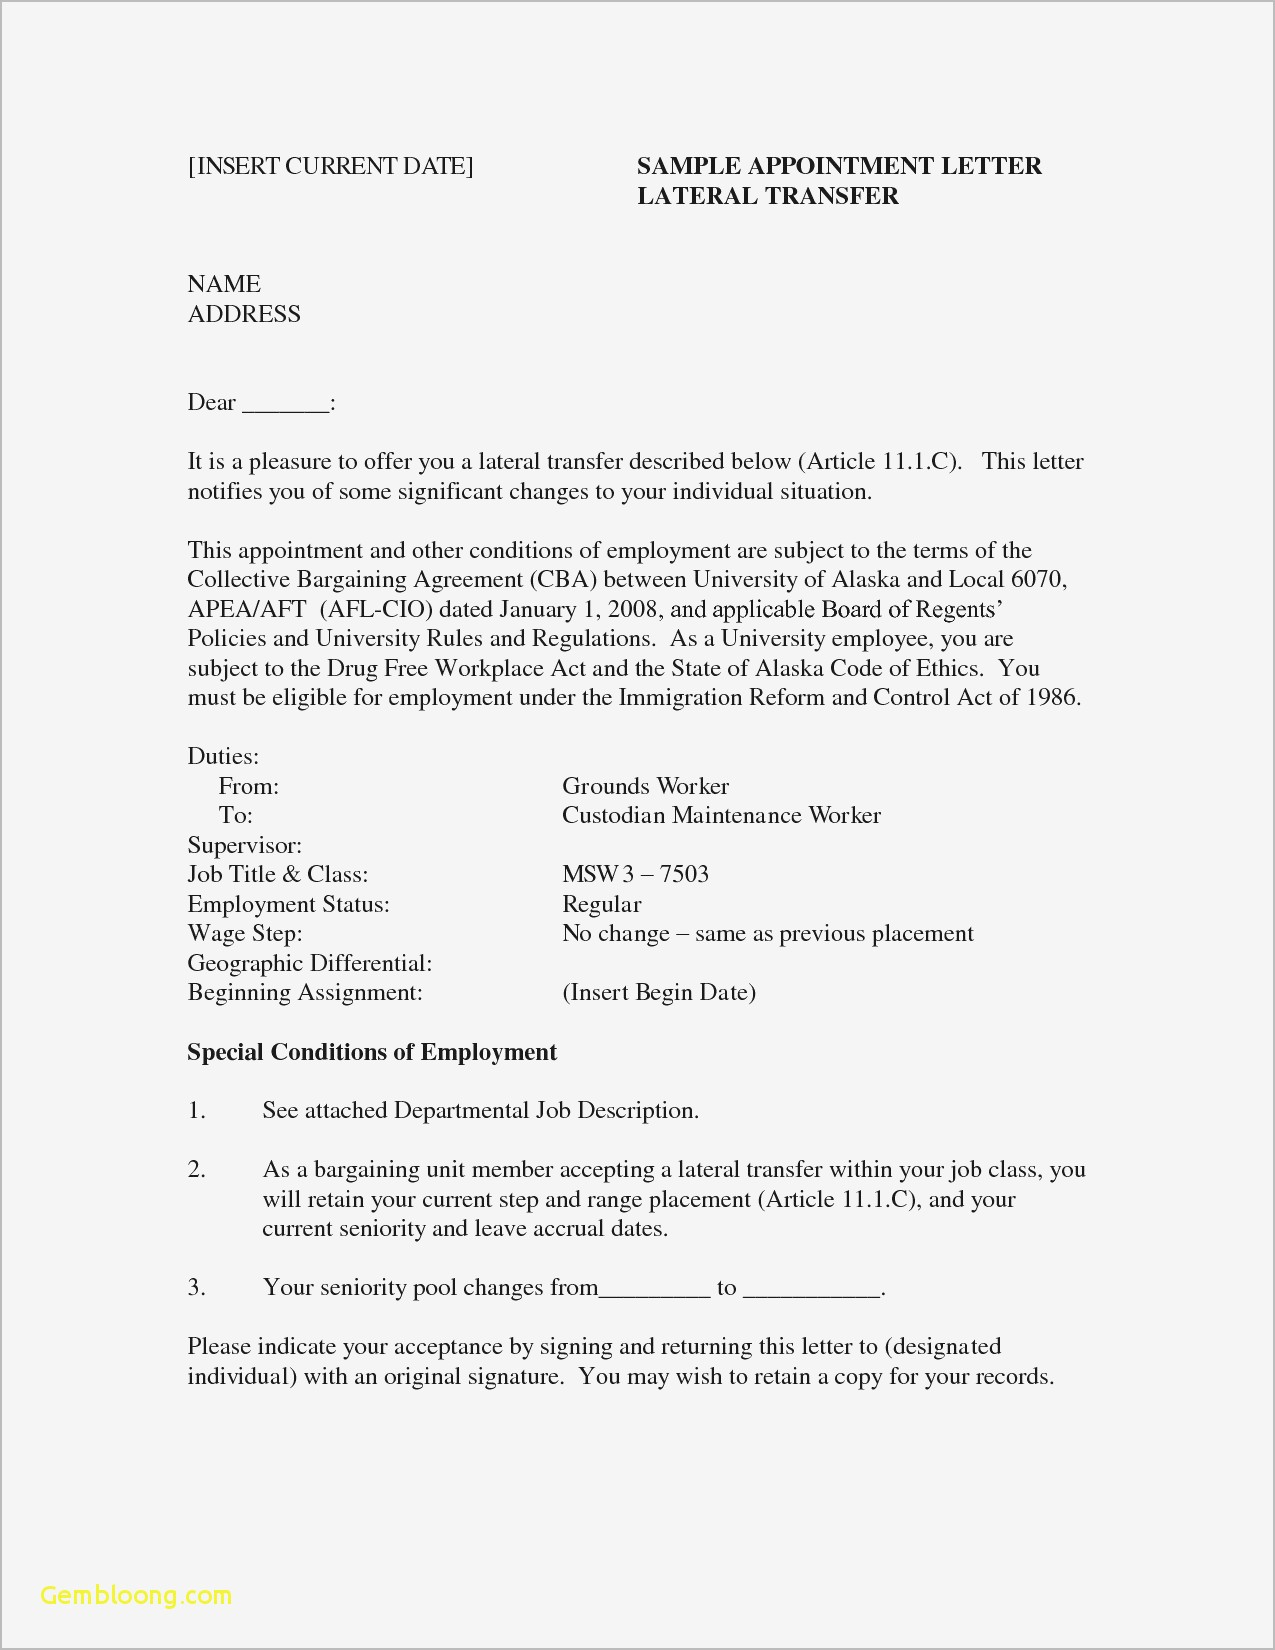 Resume Cover Letter Template Pdf - Cover Letters Templates Pdf format